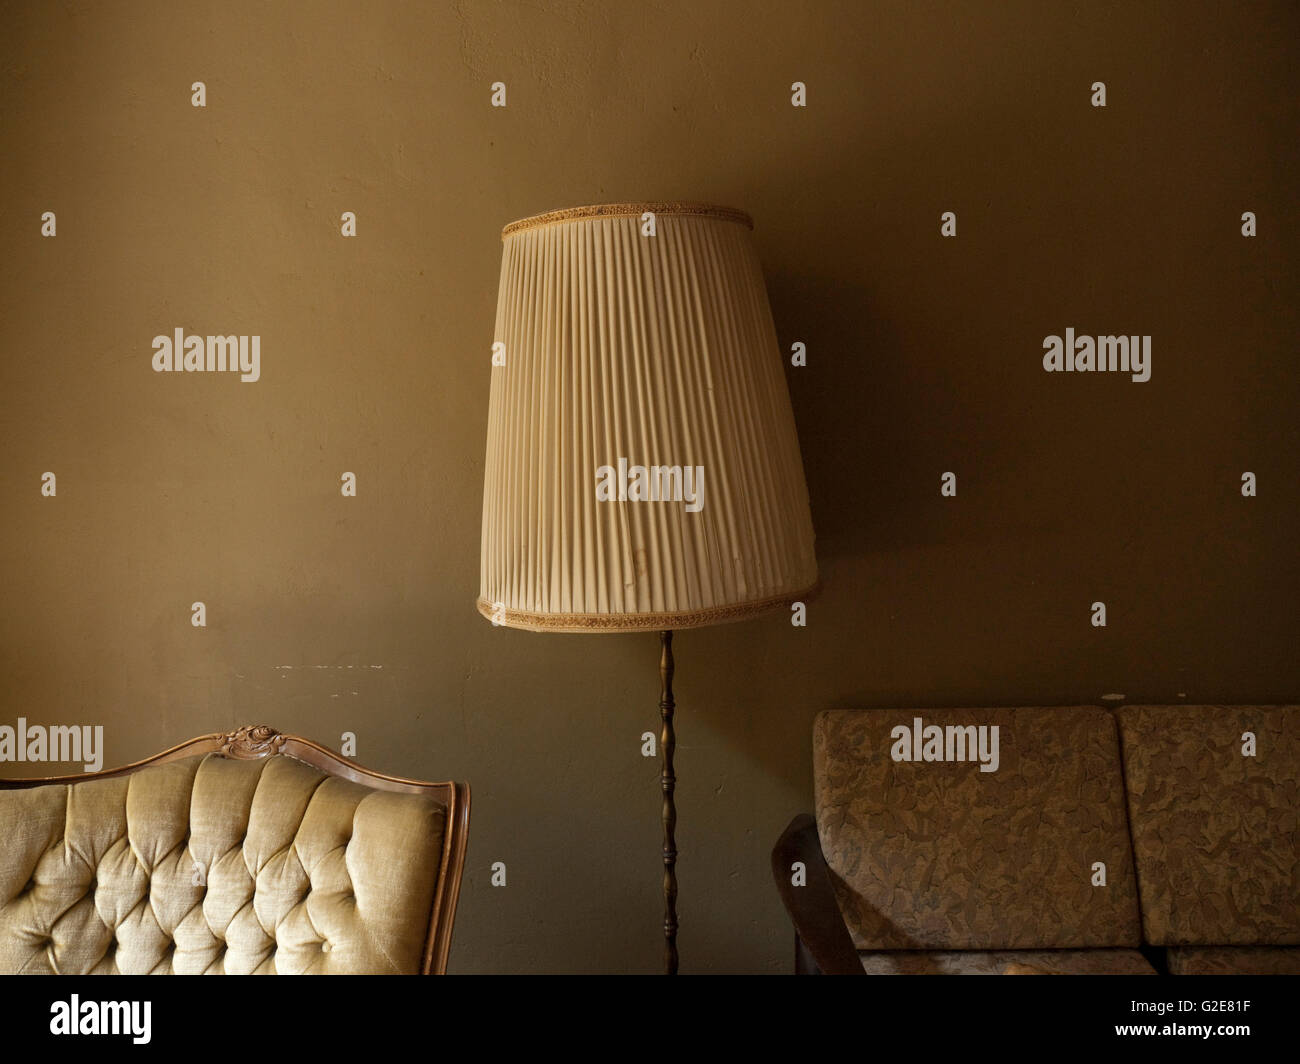 Lamp and Upholstered Chairs - Stock Image